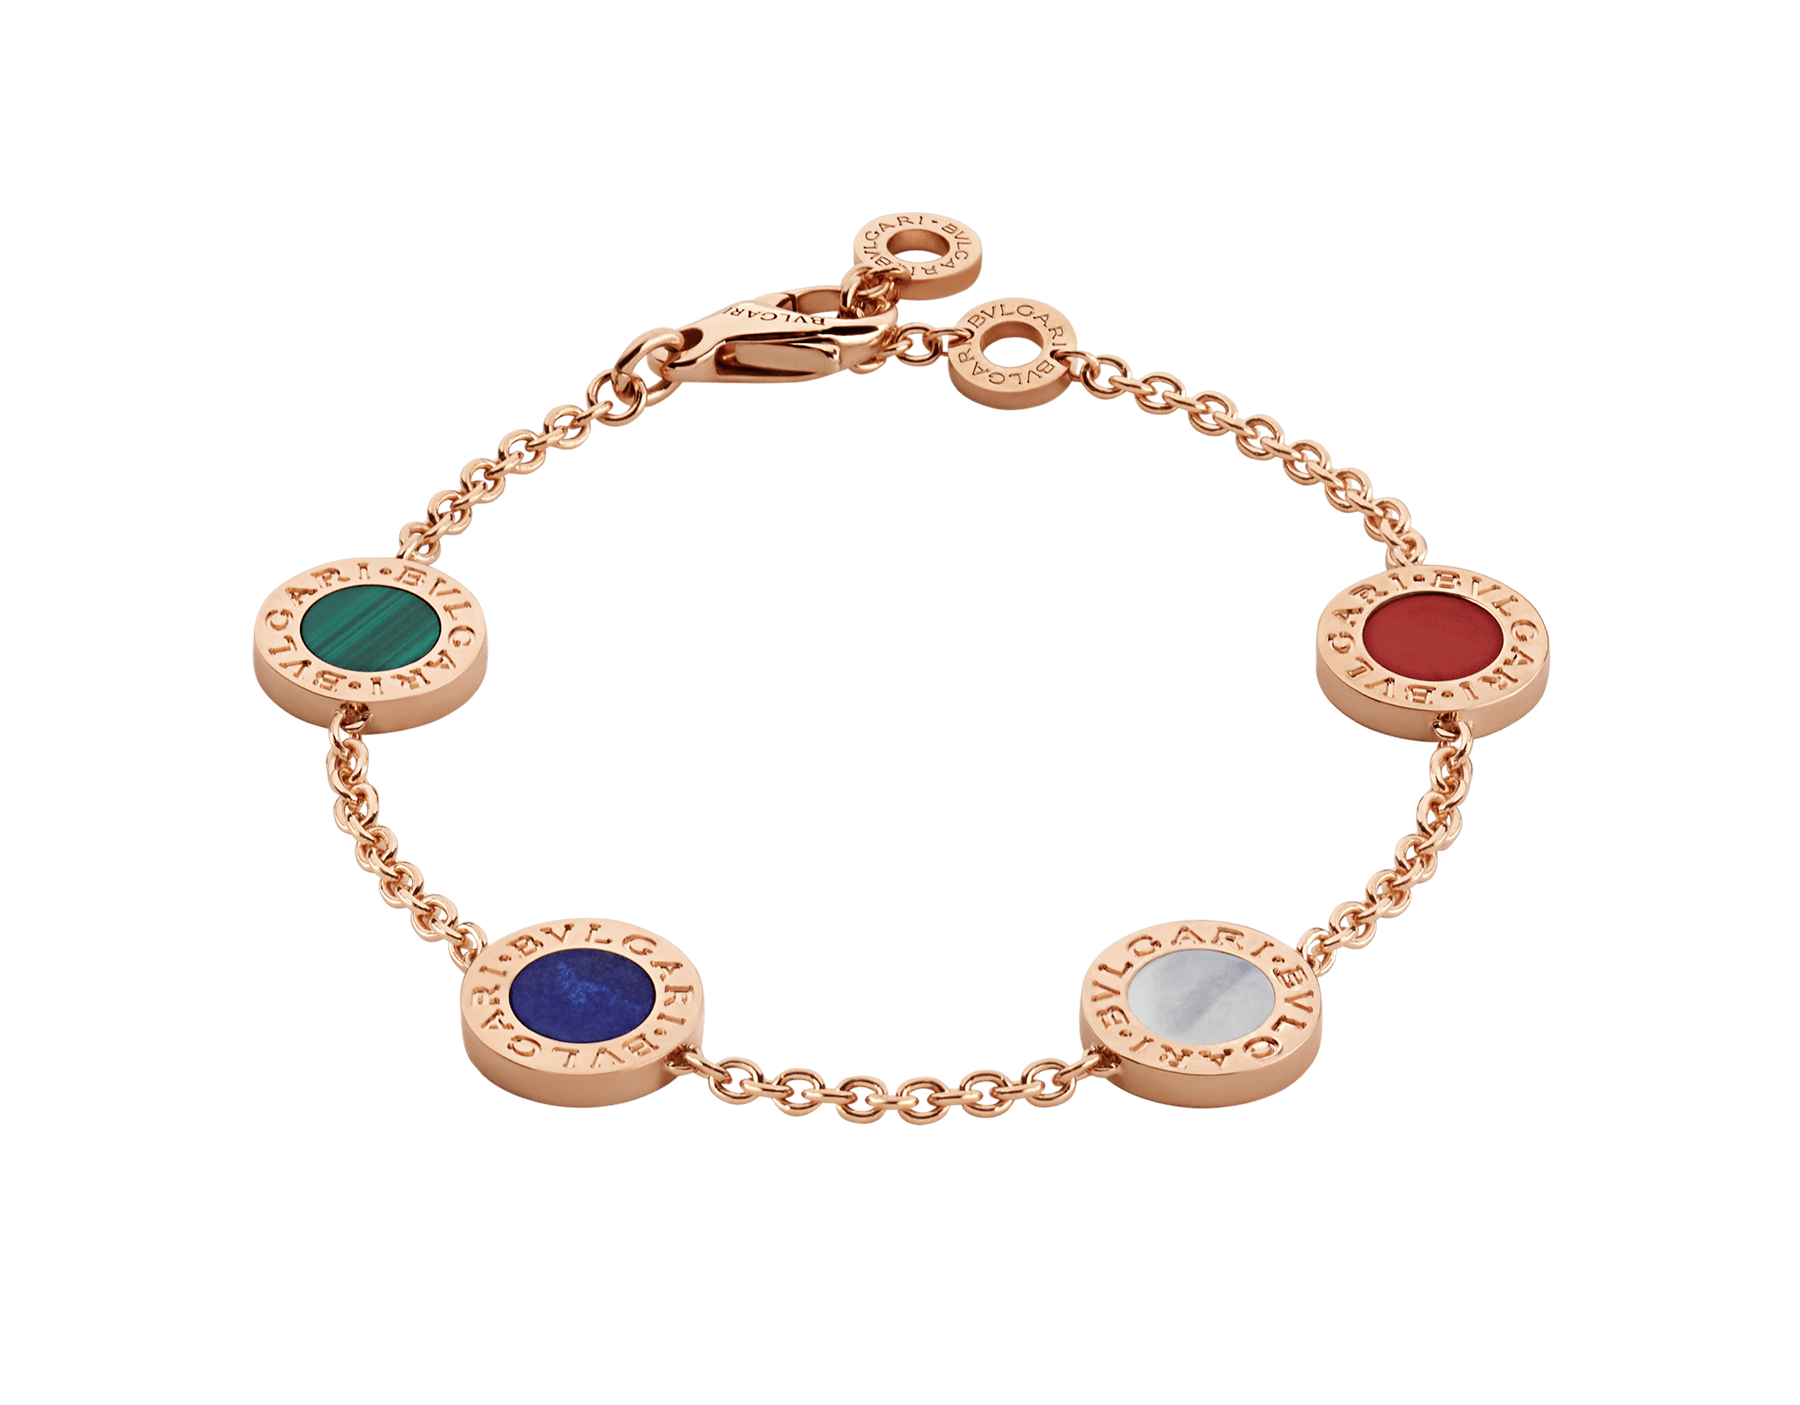 BVLGARI BVLGARI 18 kt rose gold bracelet set with carnelian, lapis, malachite and mother of pearl elements BR857842 image 1